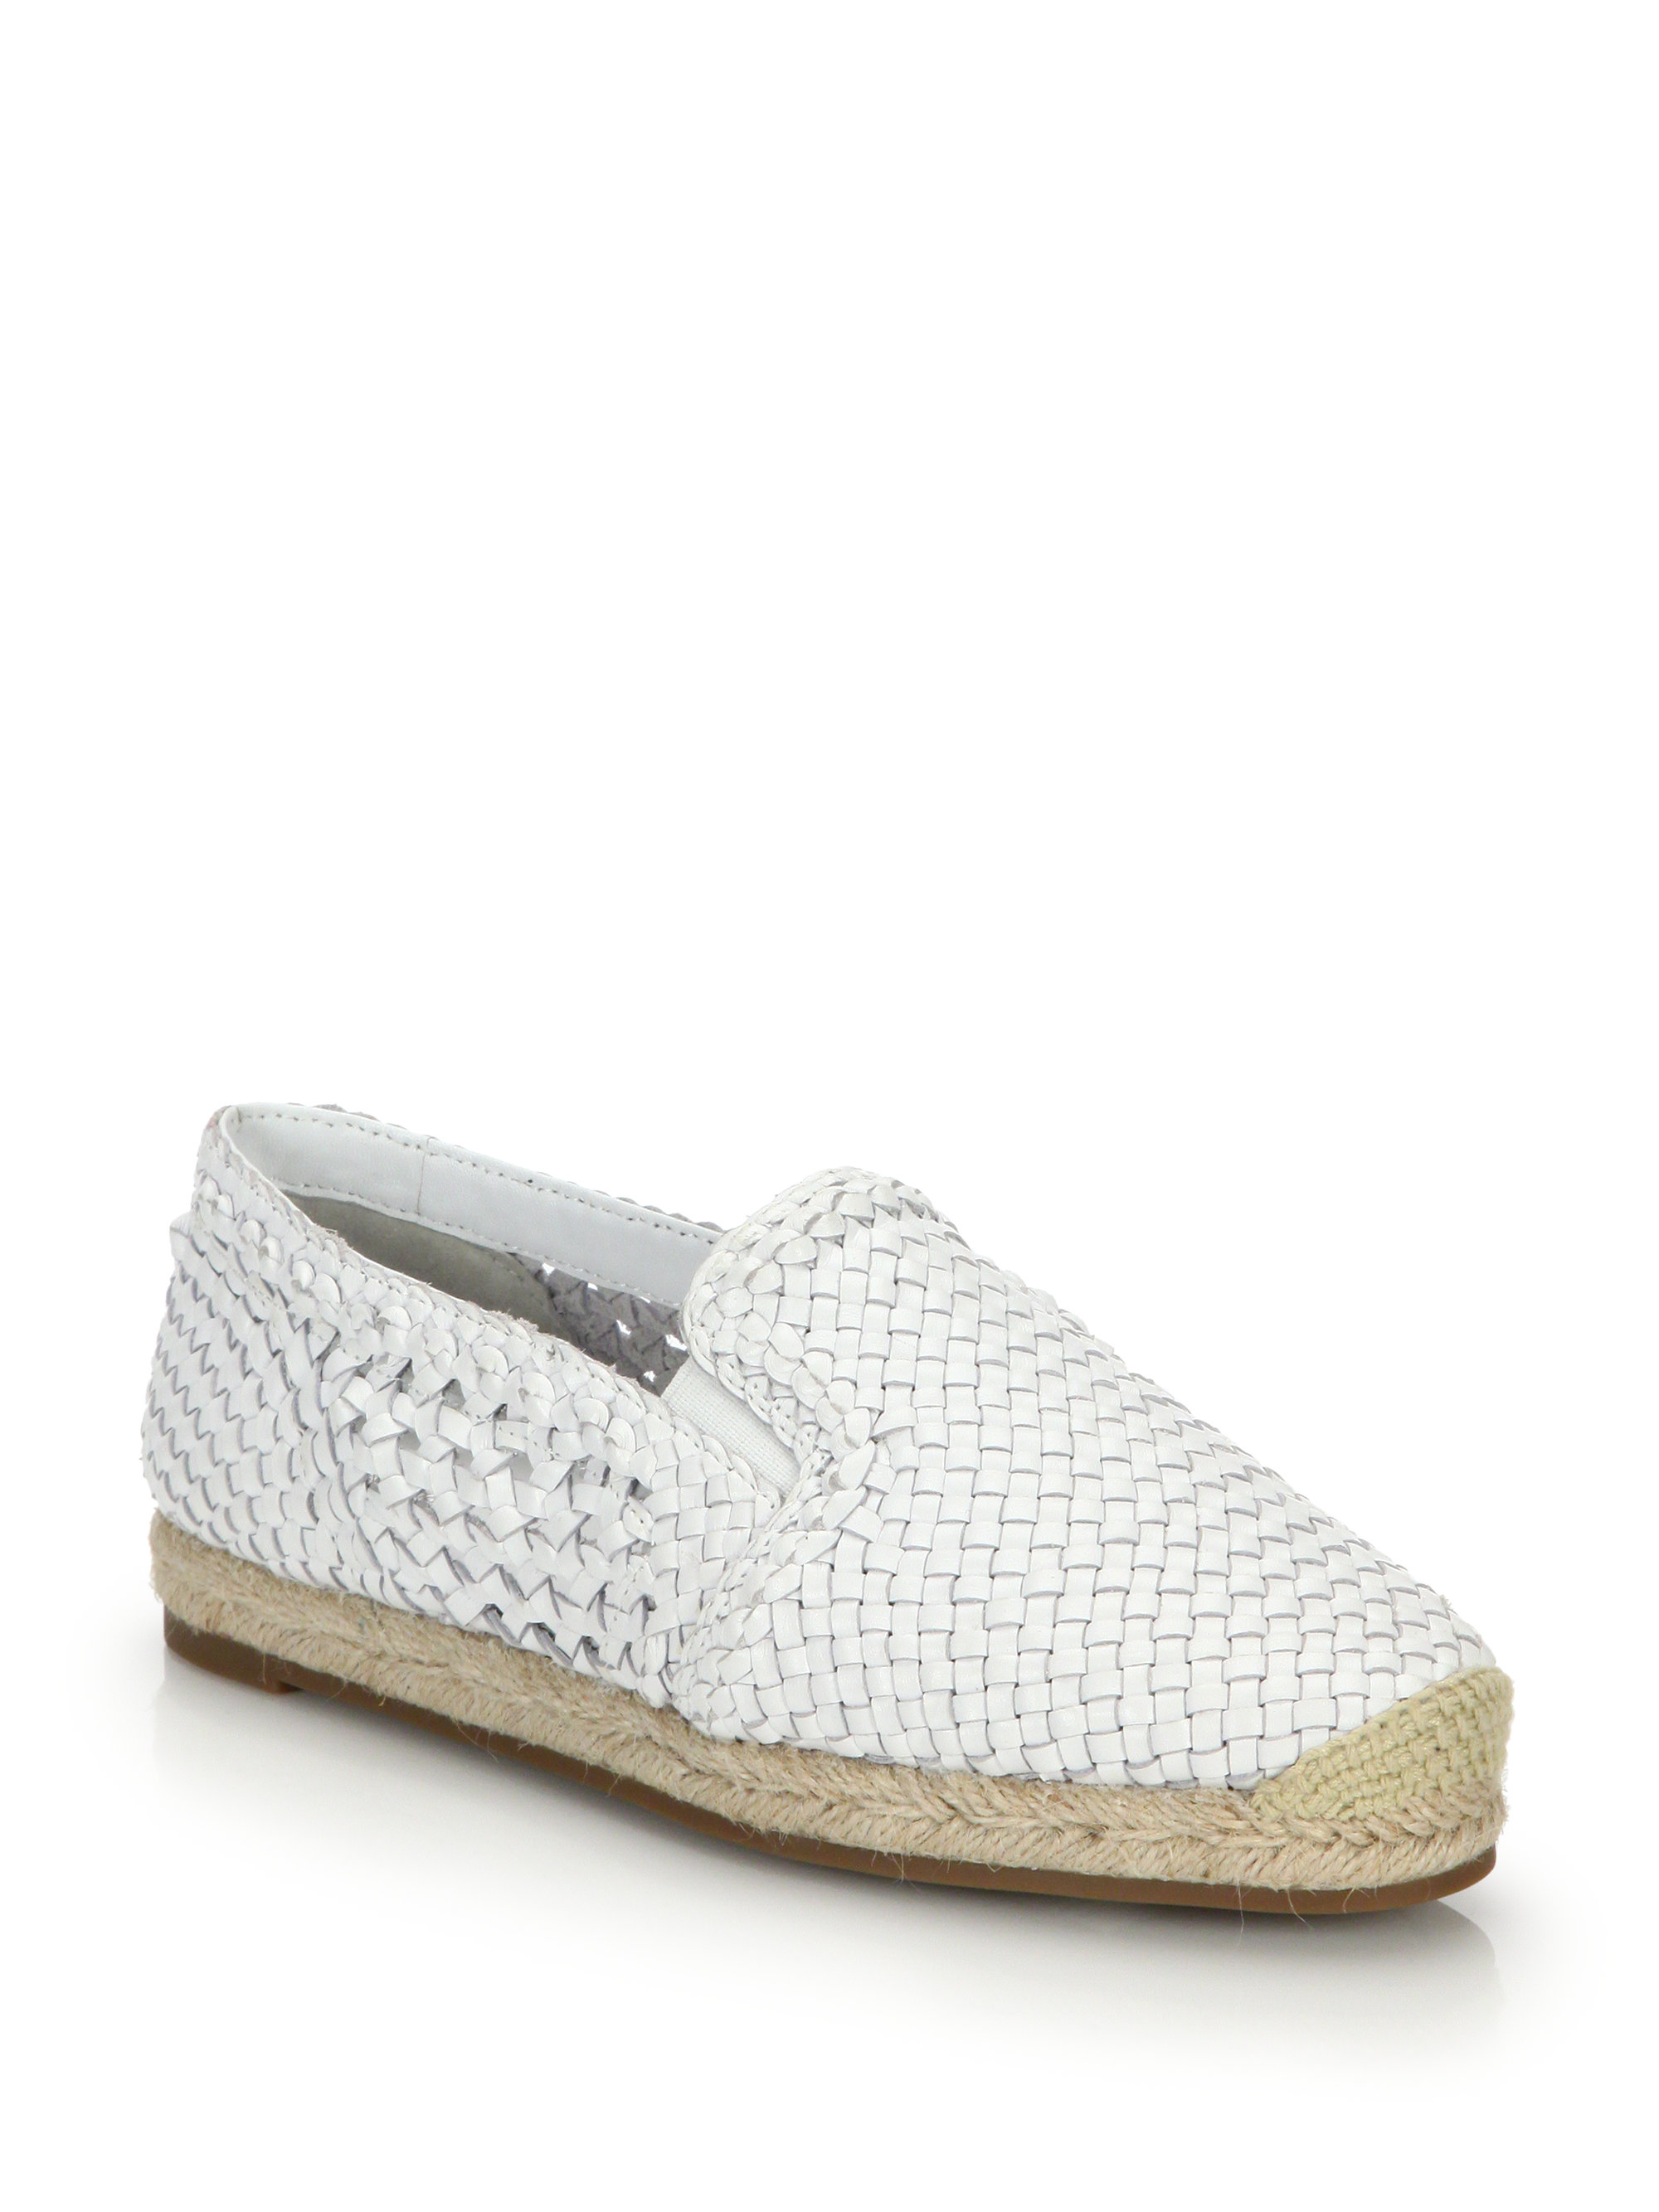 Lyst Michael Kors Toni Woven Leather Espadrille Flats In